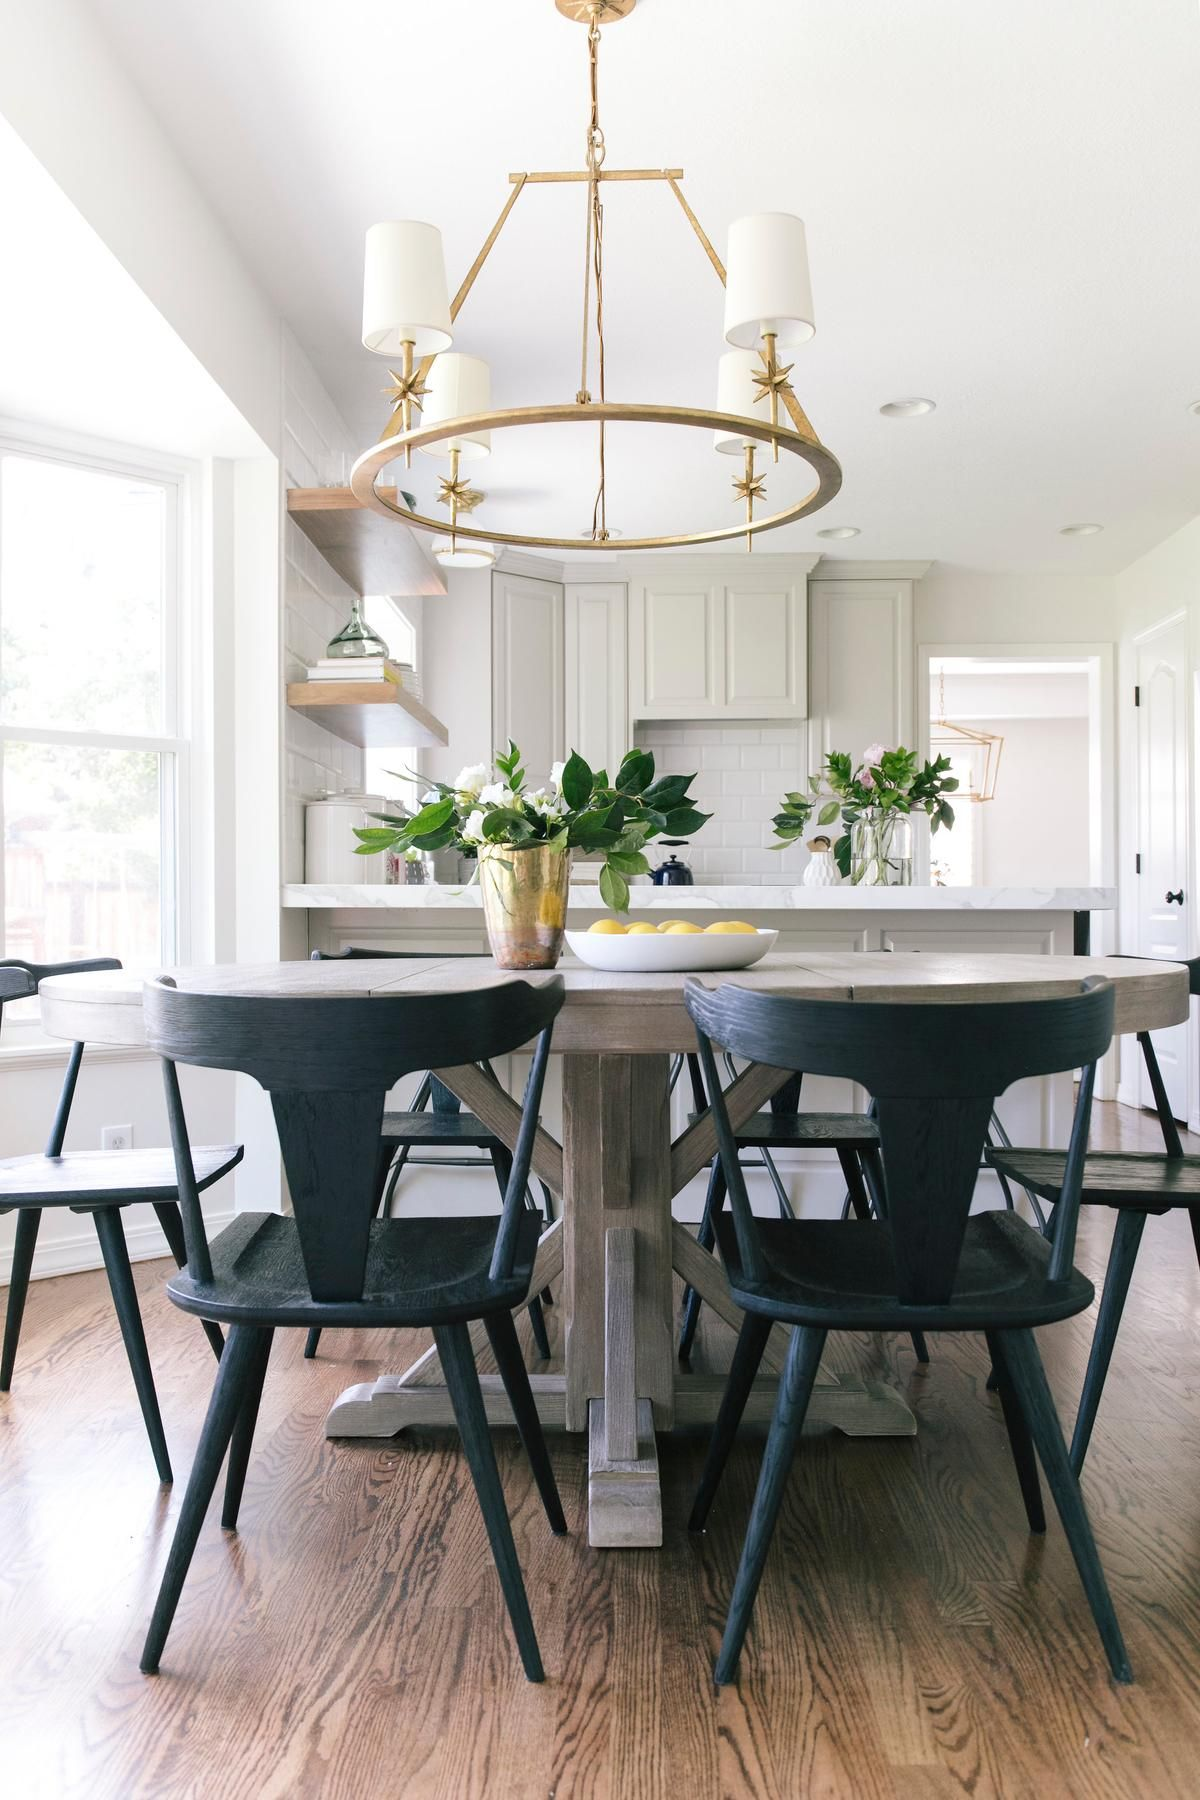 How Best Friends Turn Their Passion Into Their Business Modern Dining Room Glamourous Dining Room Grey Dining Tables Wood table with black chairs